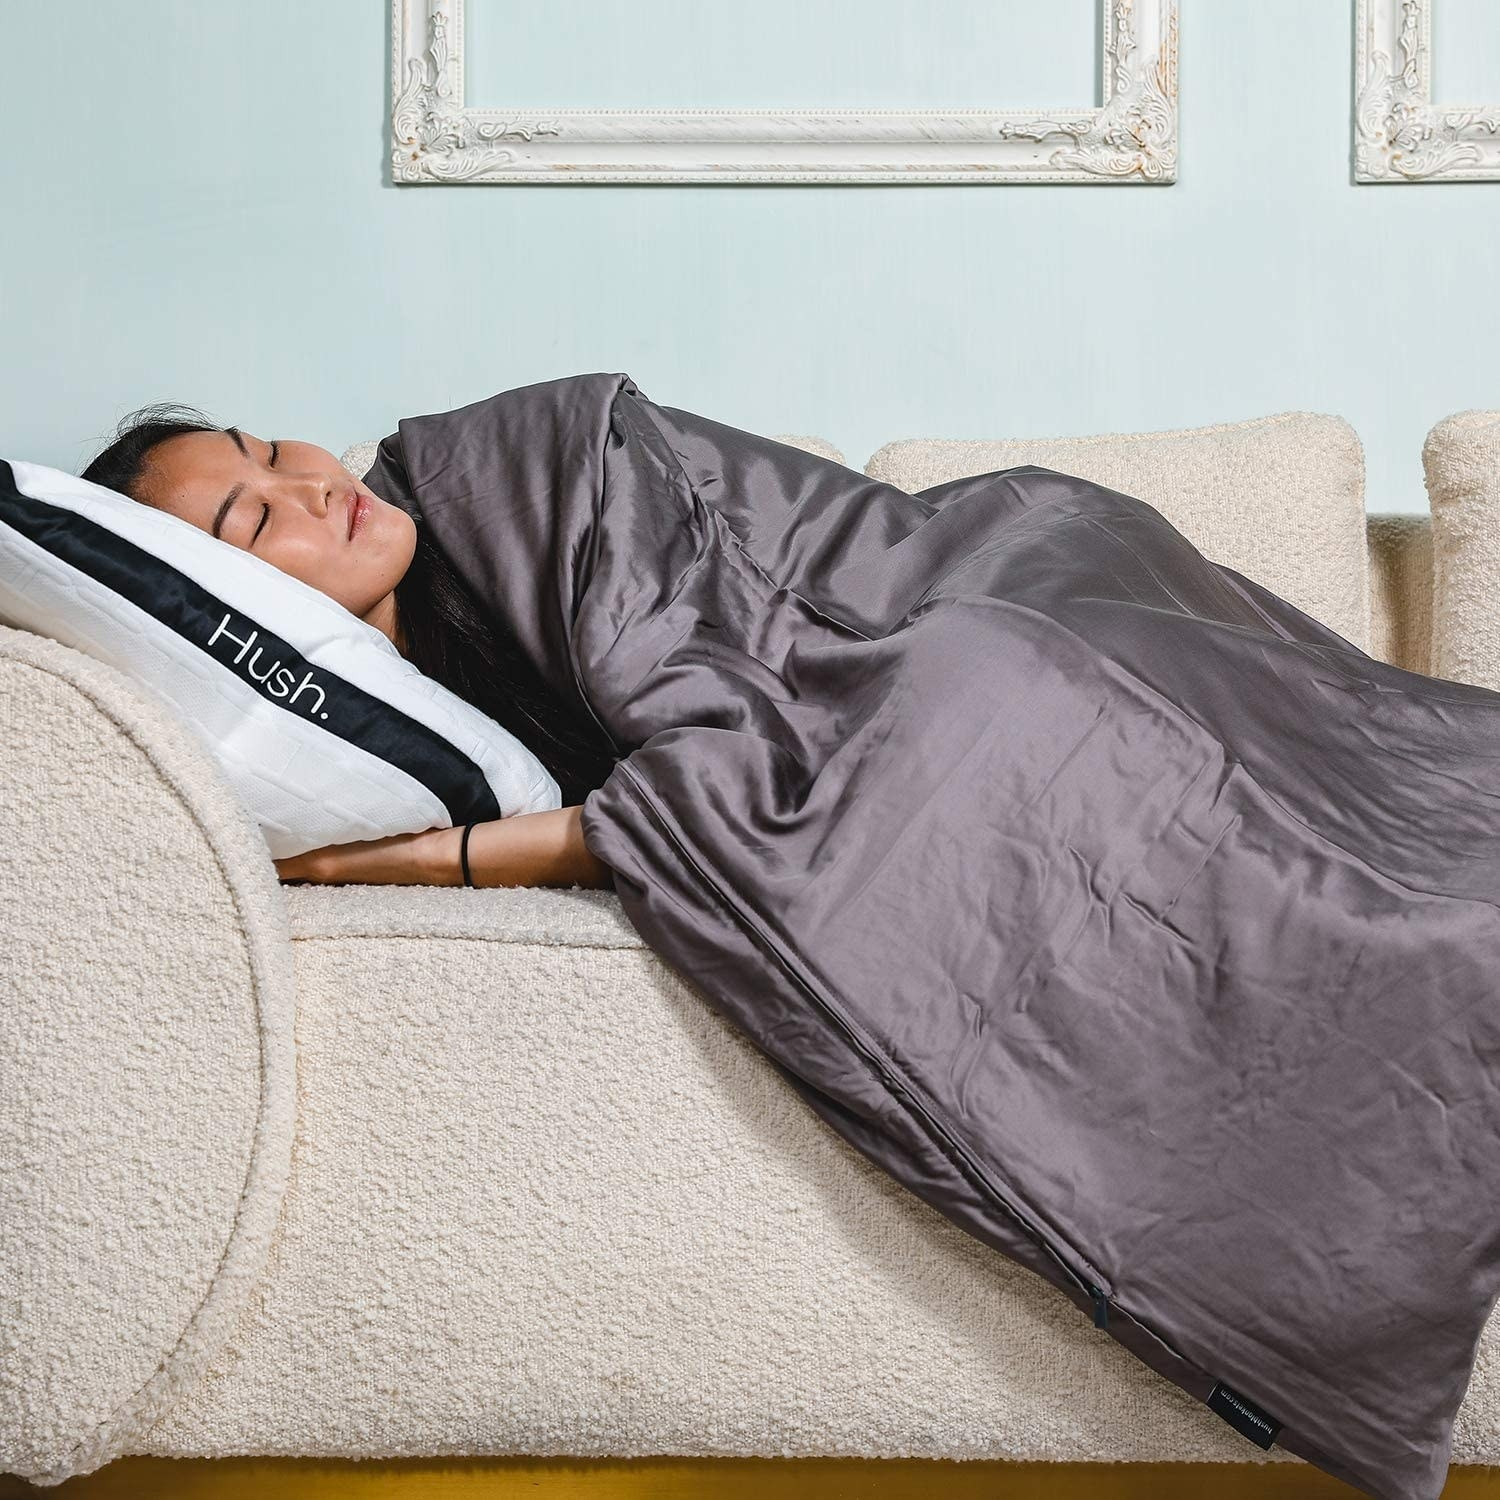 A person sleeping on a couch under the blanket